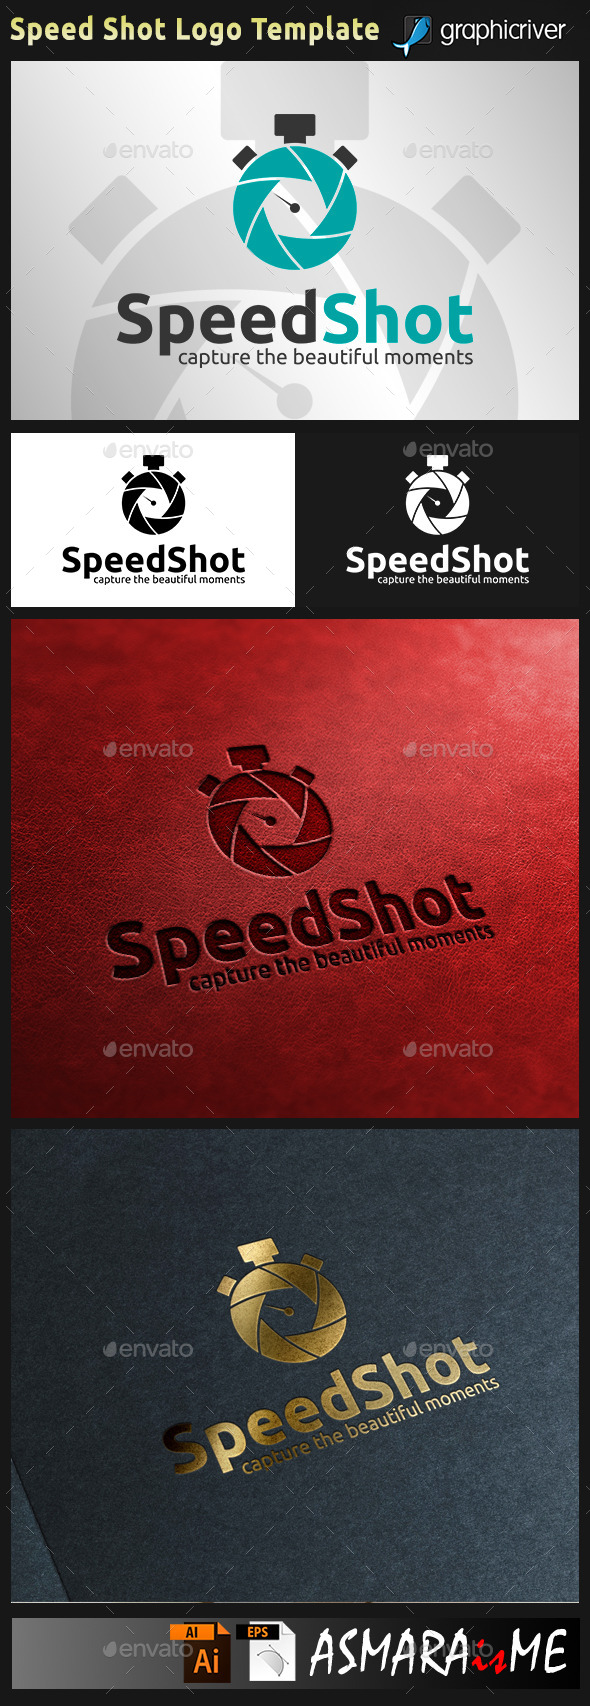 Speed Shot Photography Lens Camera Logo